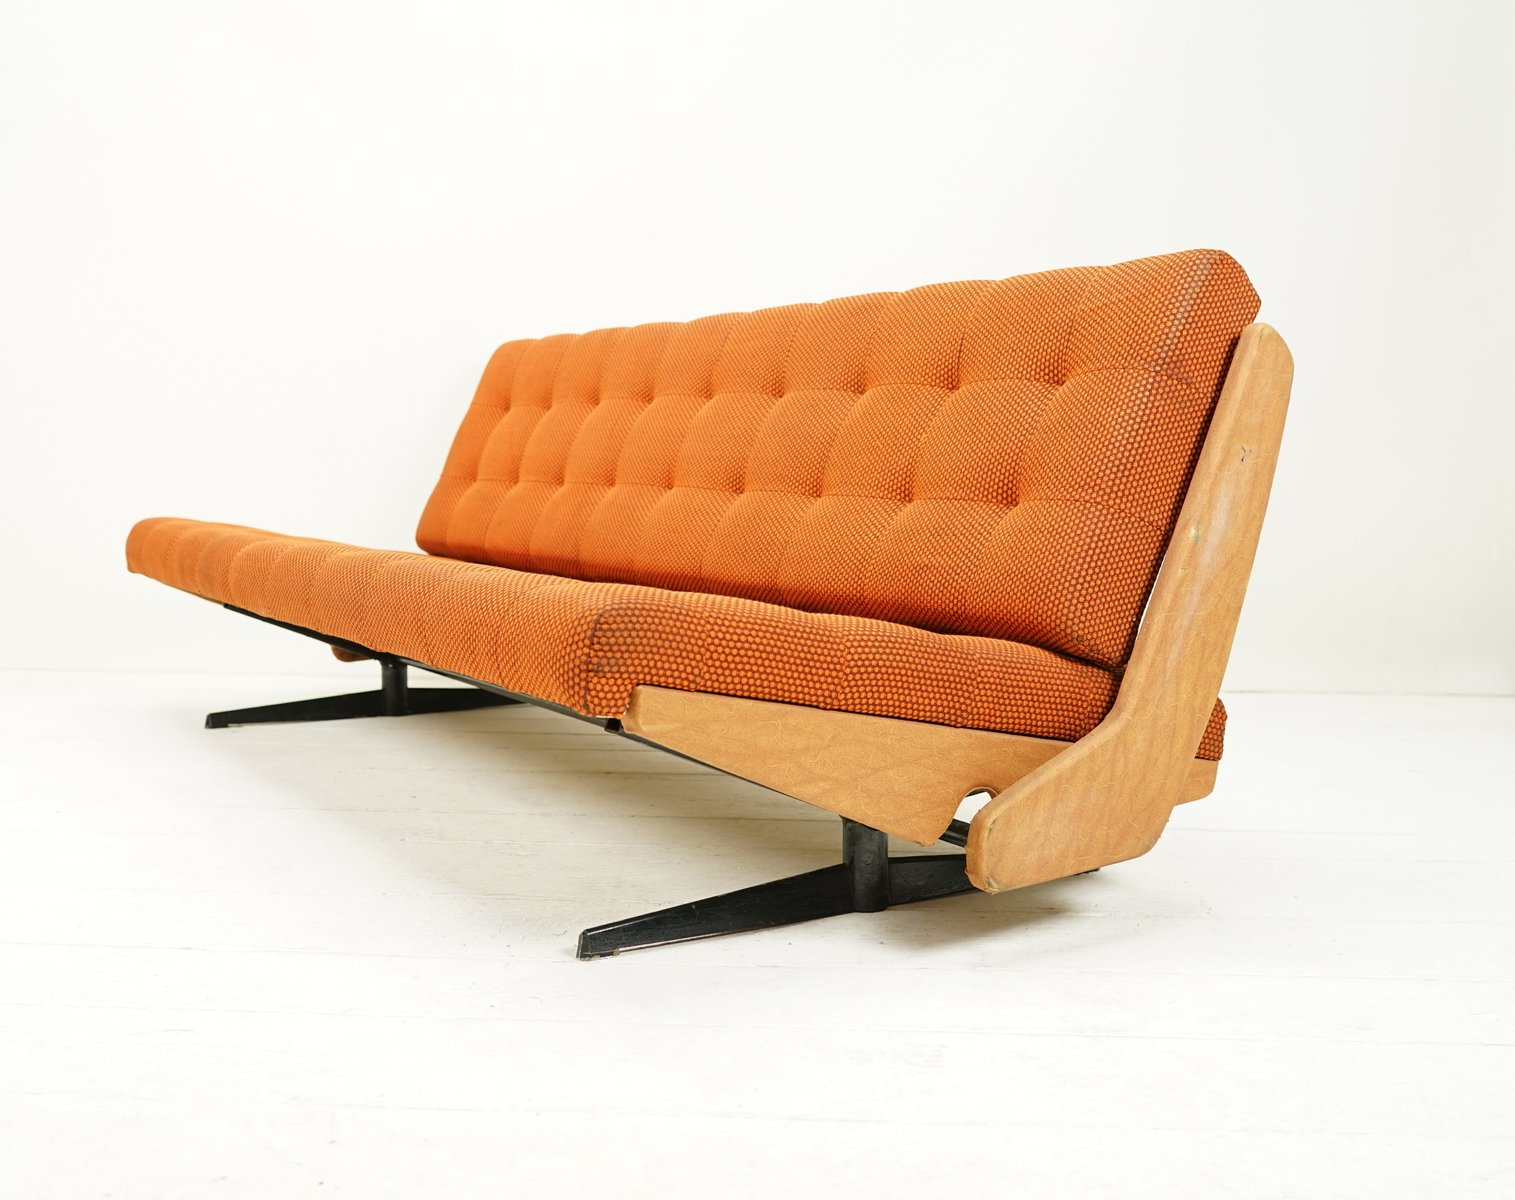 d nisches vintage schlafsofa von m cke melder 1960er bei pamono kaufen. Black Bedroom Furniture Sets. Home Design Ideas